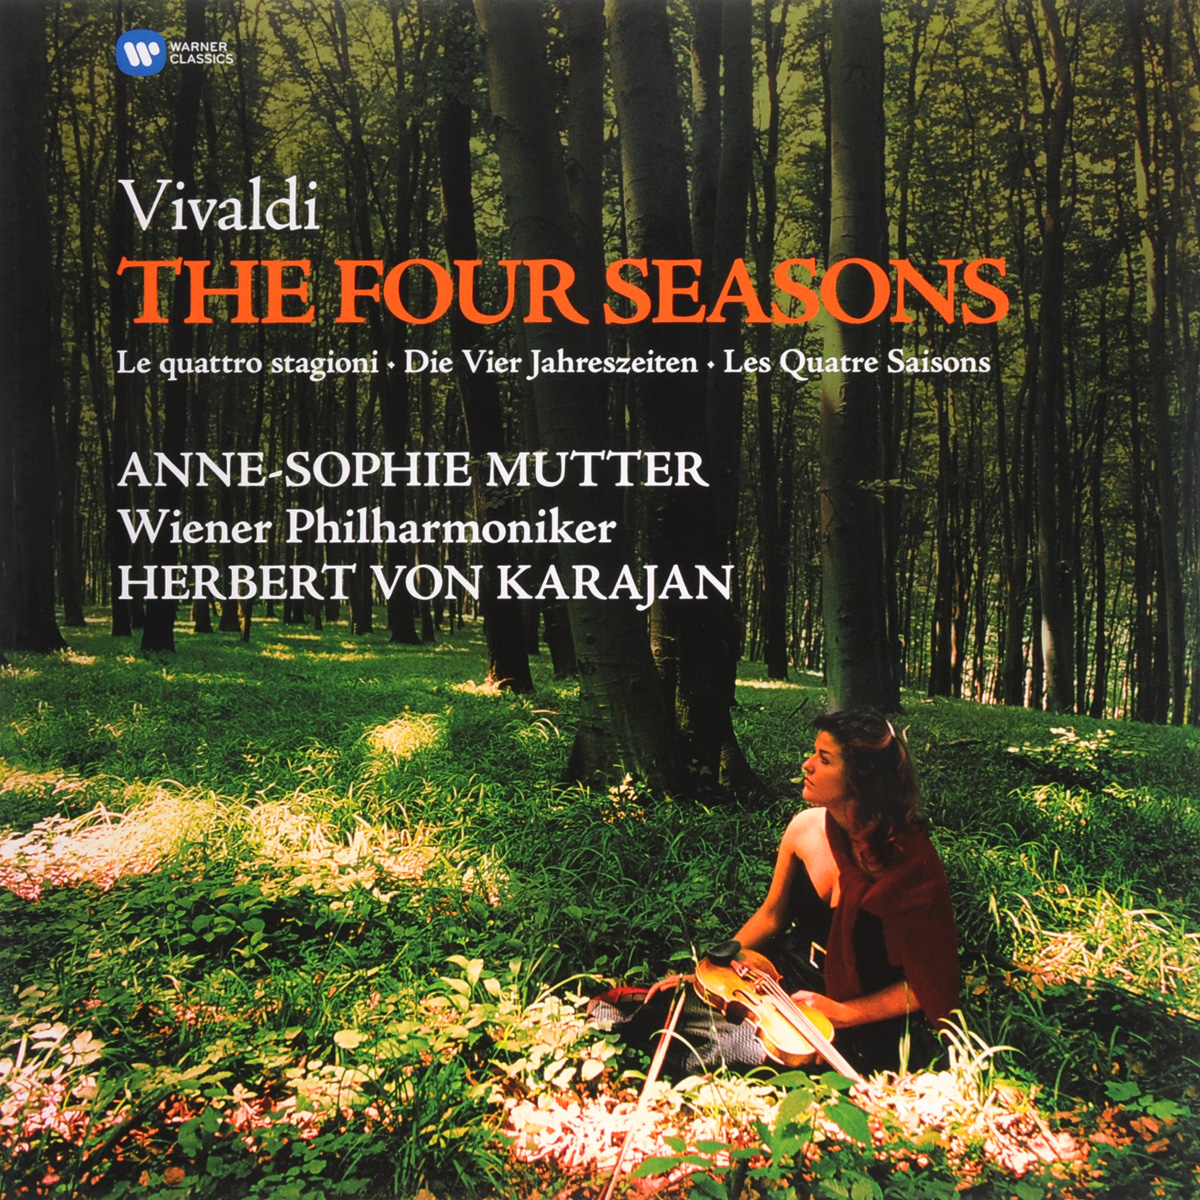 Анна-Софи Муттер,Герберт Караян,Wiener Philharmoniker Anne-Sophie Mutter, Herbert Von Karajan, Wiener Philharmoniker. Vivaldi. The Four Seasons (LP) анна софи муттер ламберт оркис anne sophie mutter lambert orkis beethoven die violinsonaten 4 cd